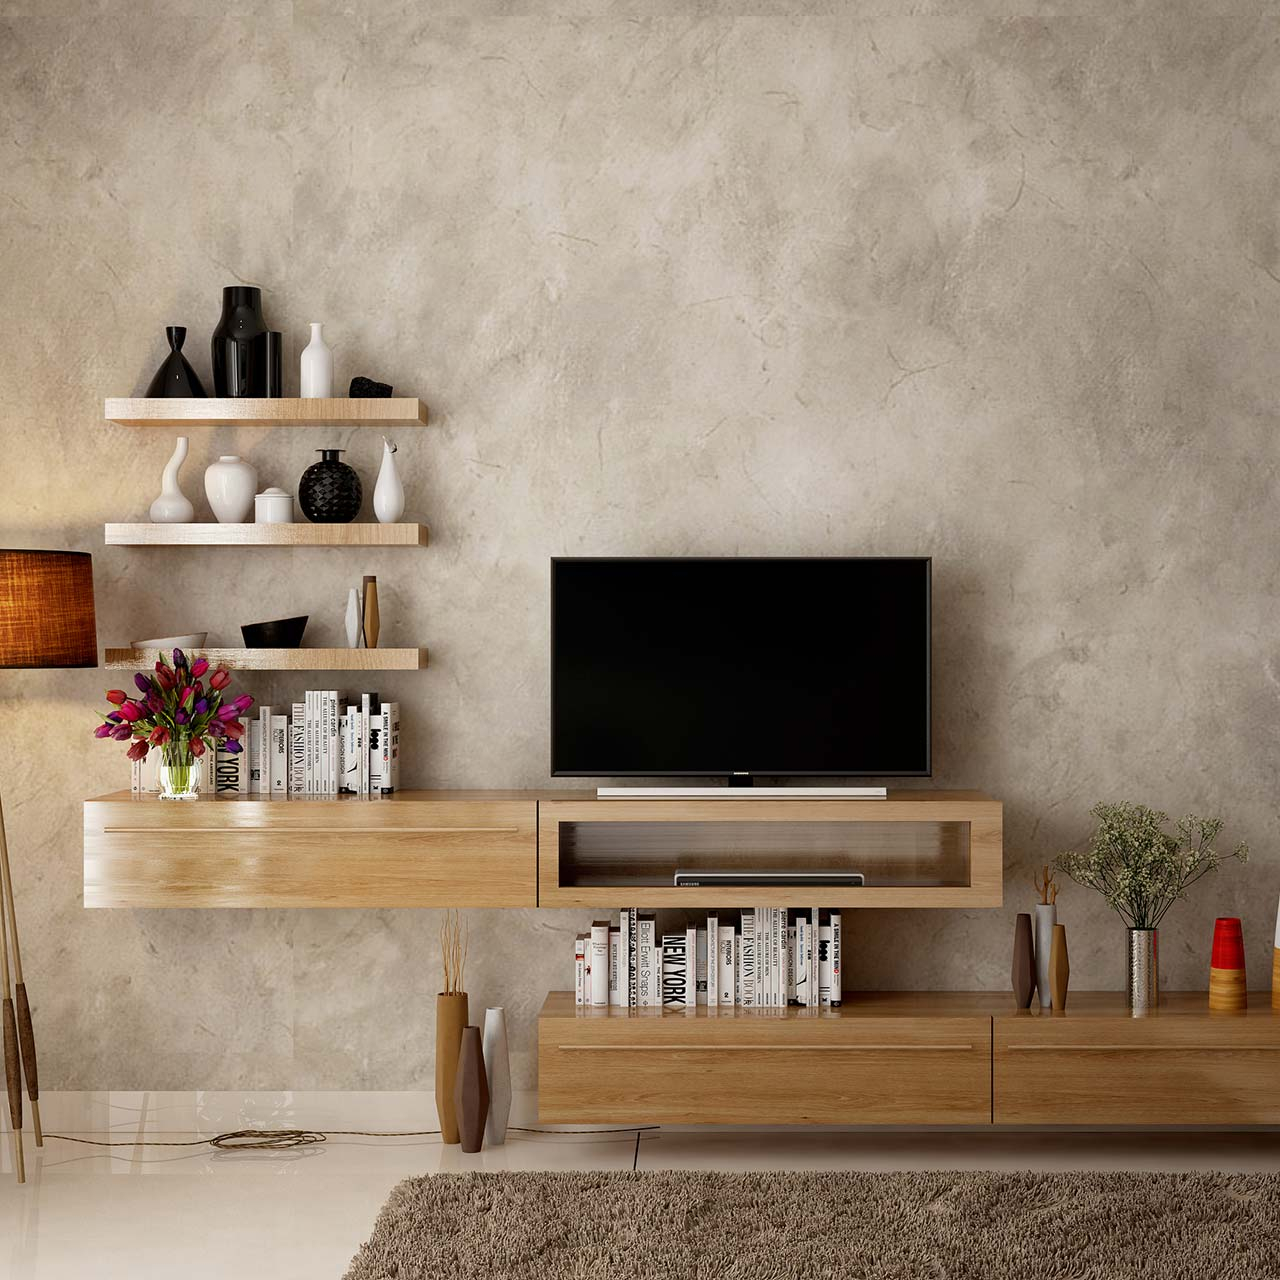 Bedroom design check list with TV unit in the bedroom with floating shelves